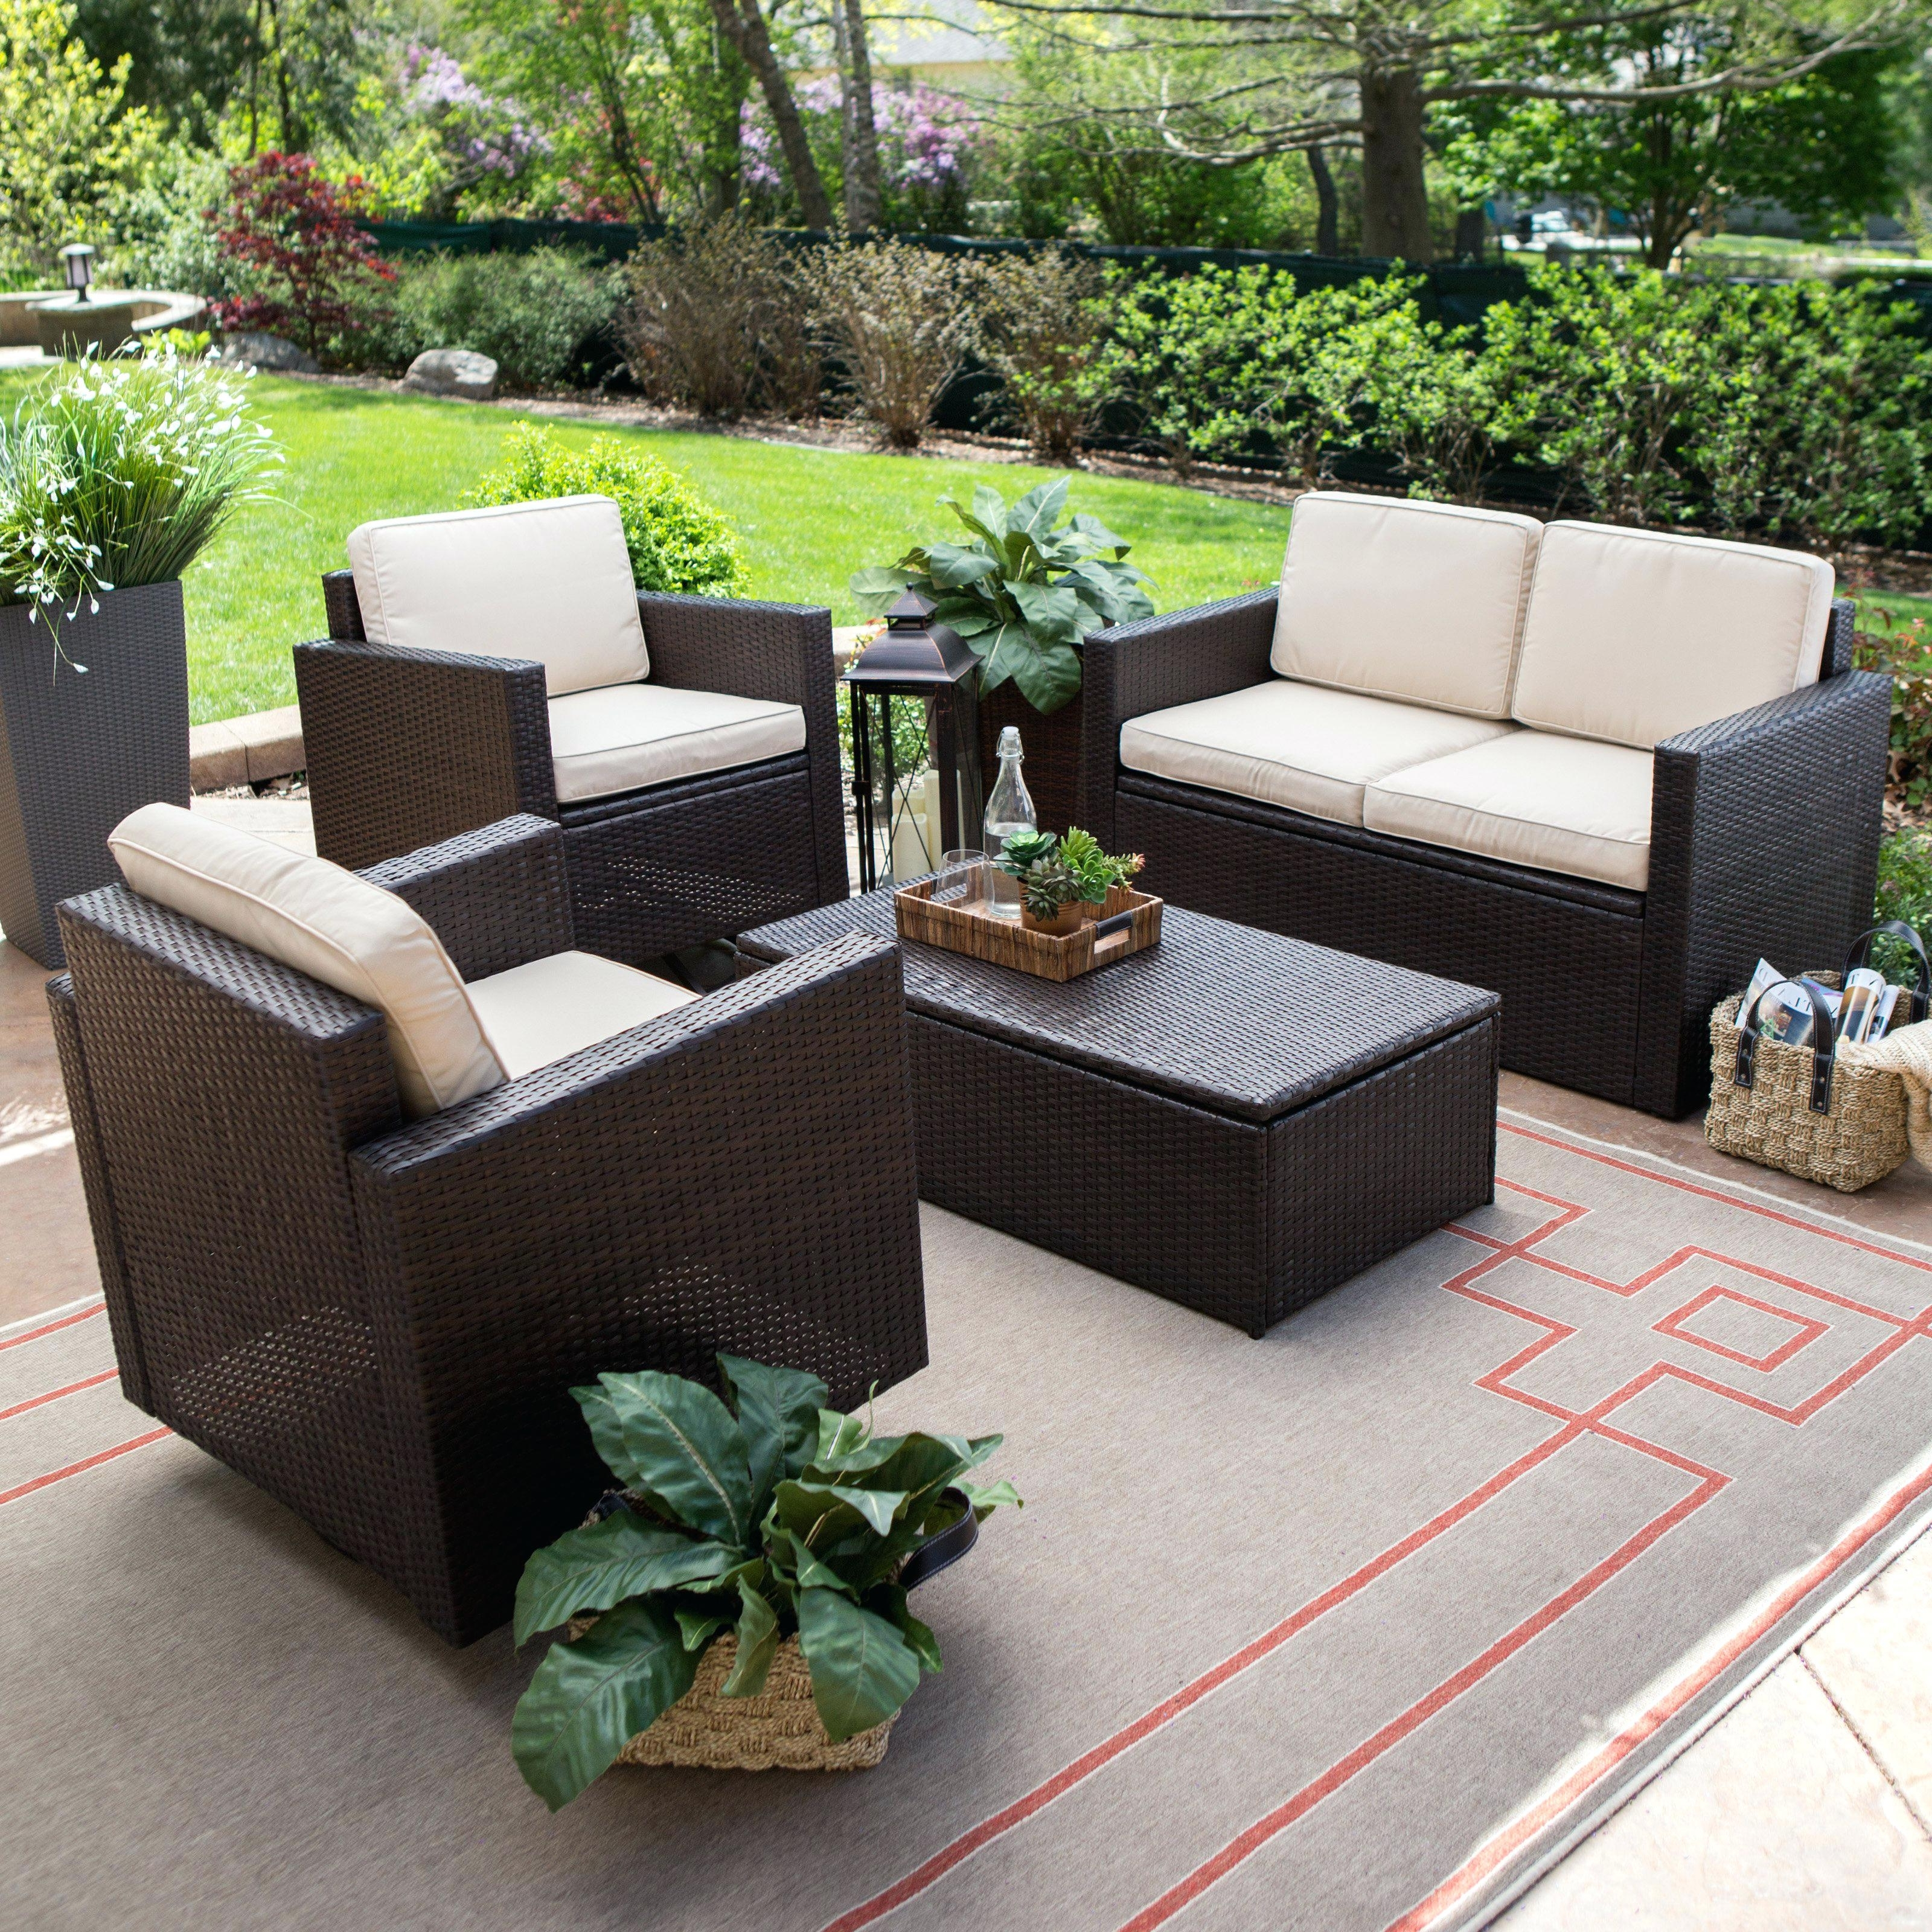 Patio Conversation Sets Coral Coast Wicker 4 Piece Conversation Set With Most Recently Released 4 Piece Patio Conversation Sets (View 3 of 20)